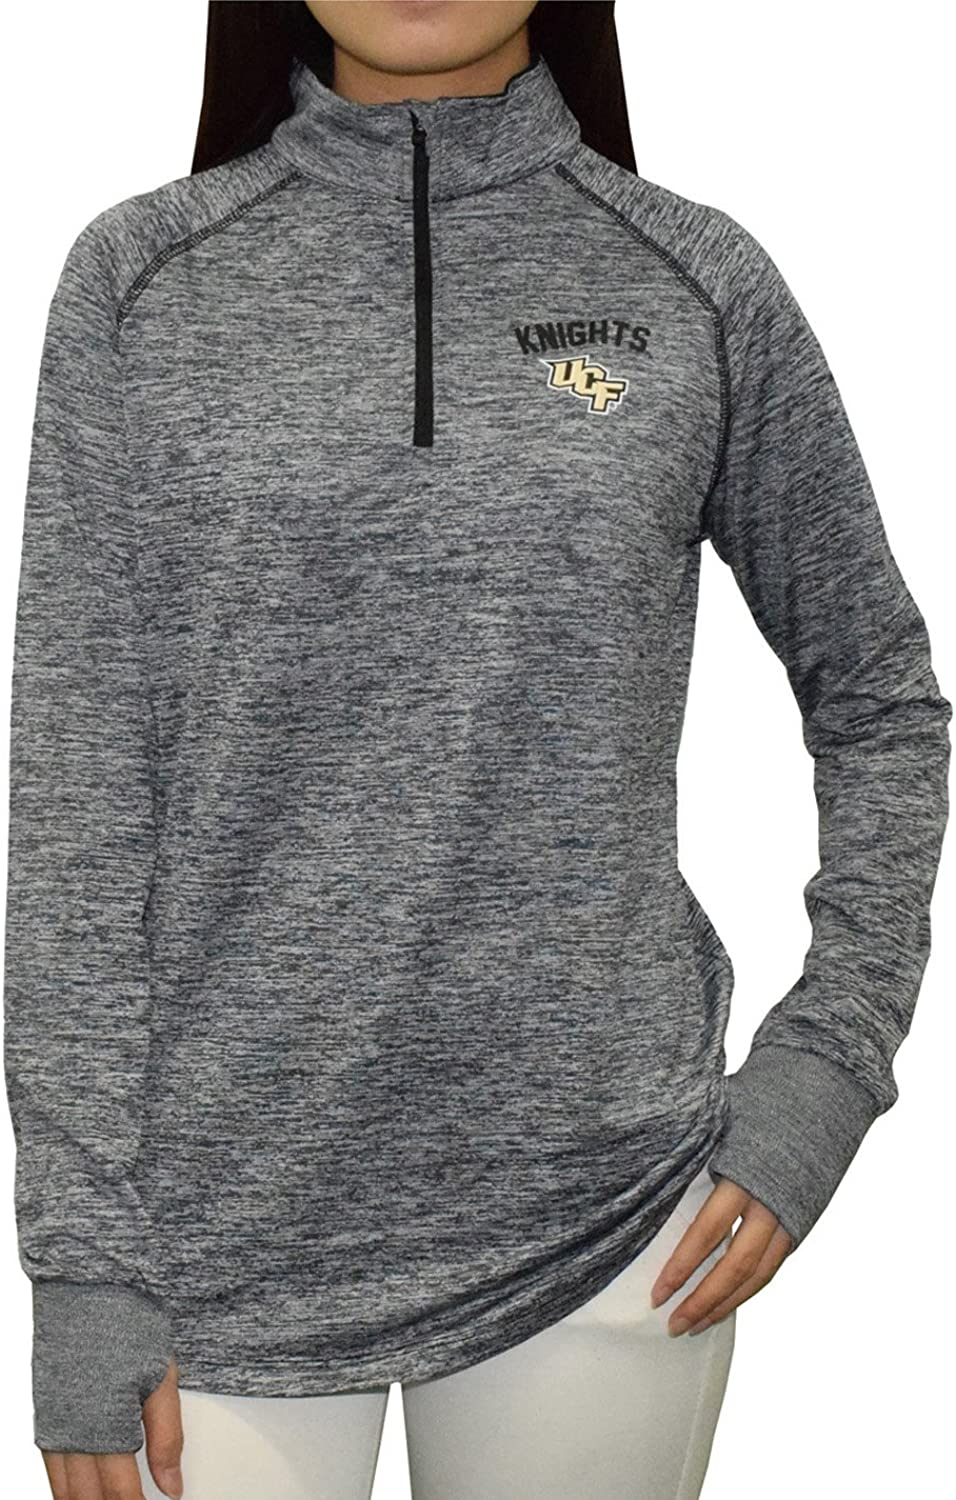 Central Florida Knights NCAA Womens Athletic 1 4 Zip Thermal Shirt